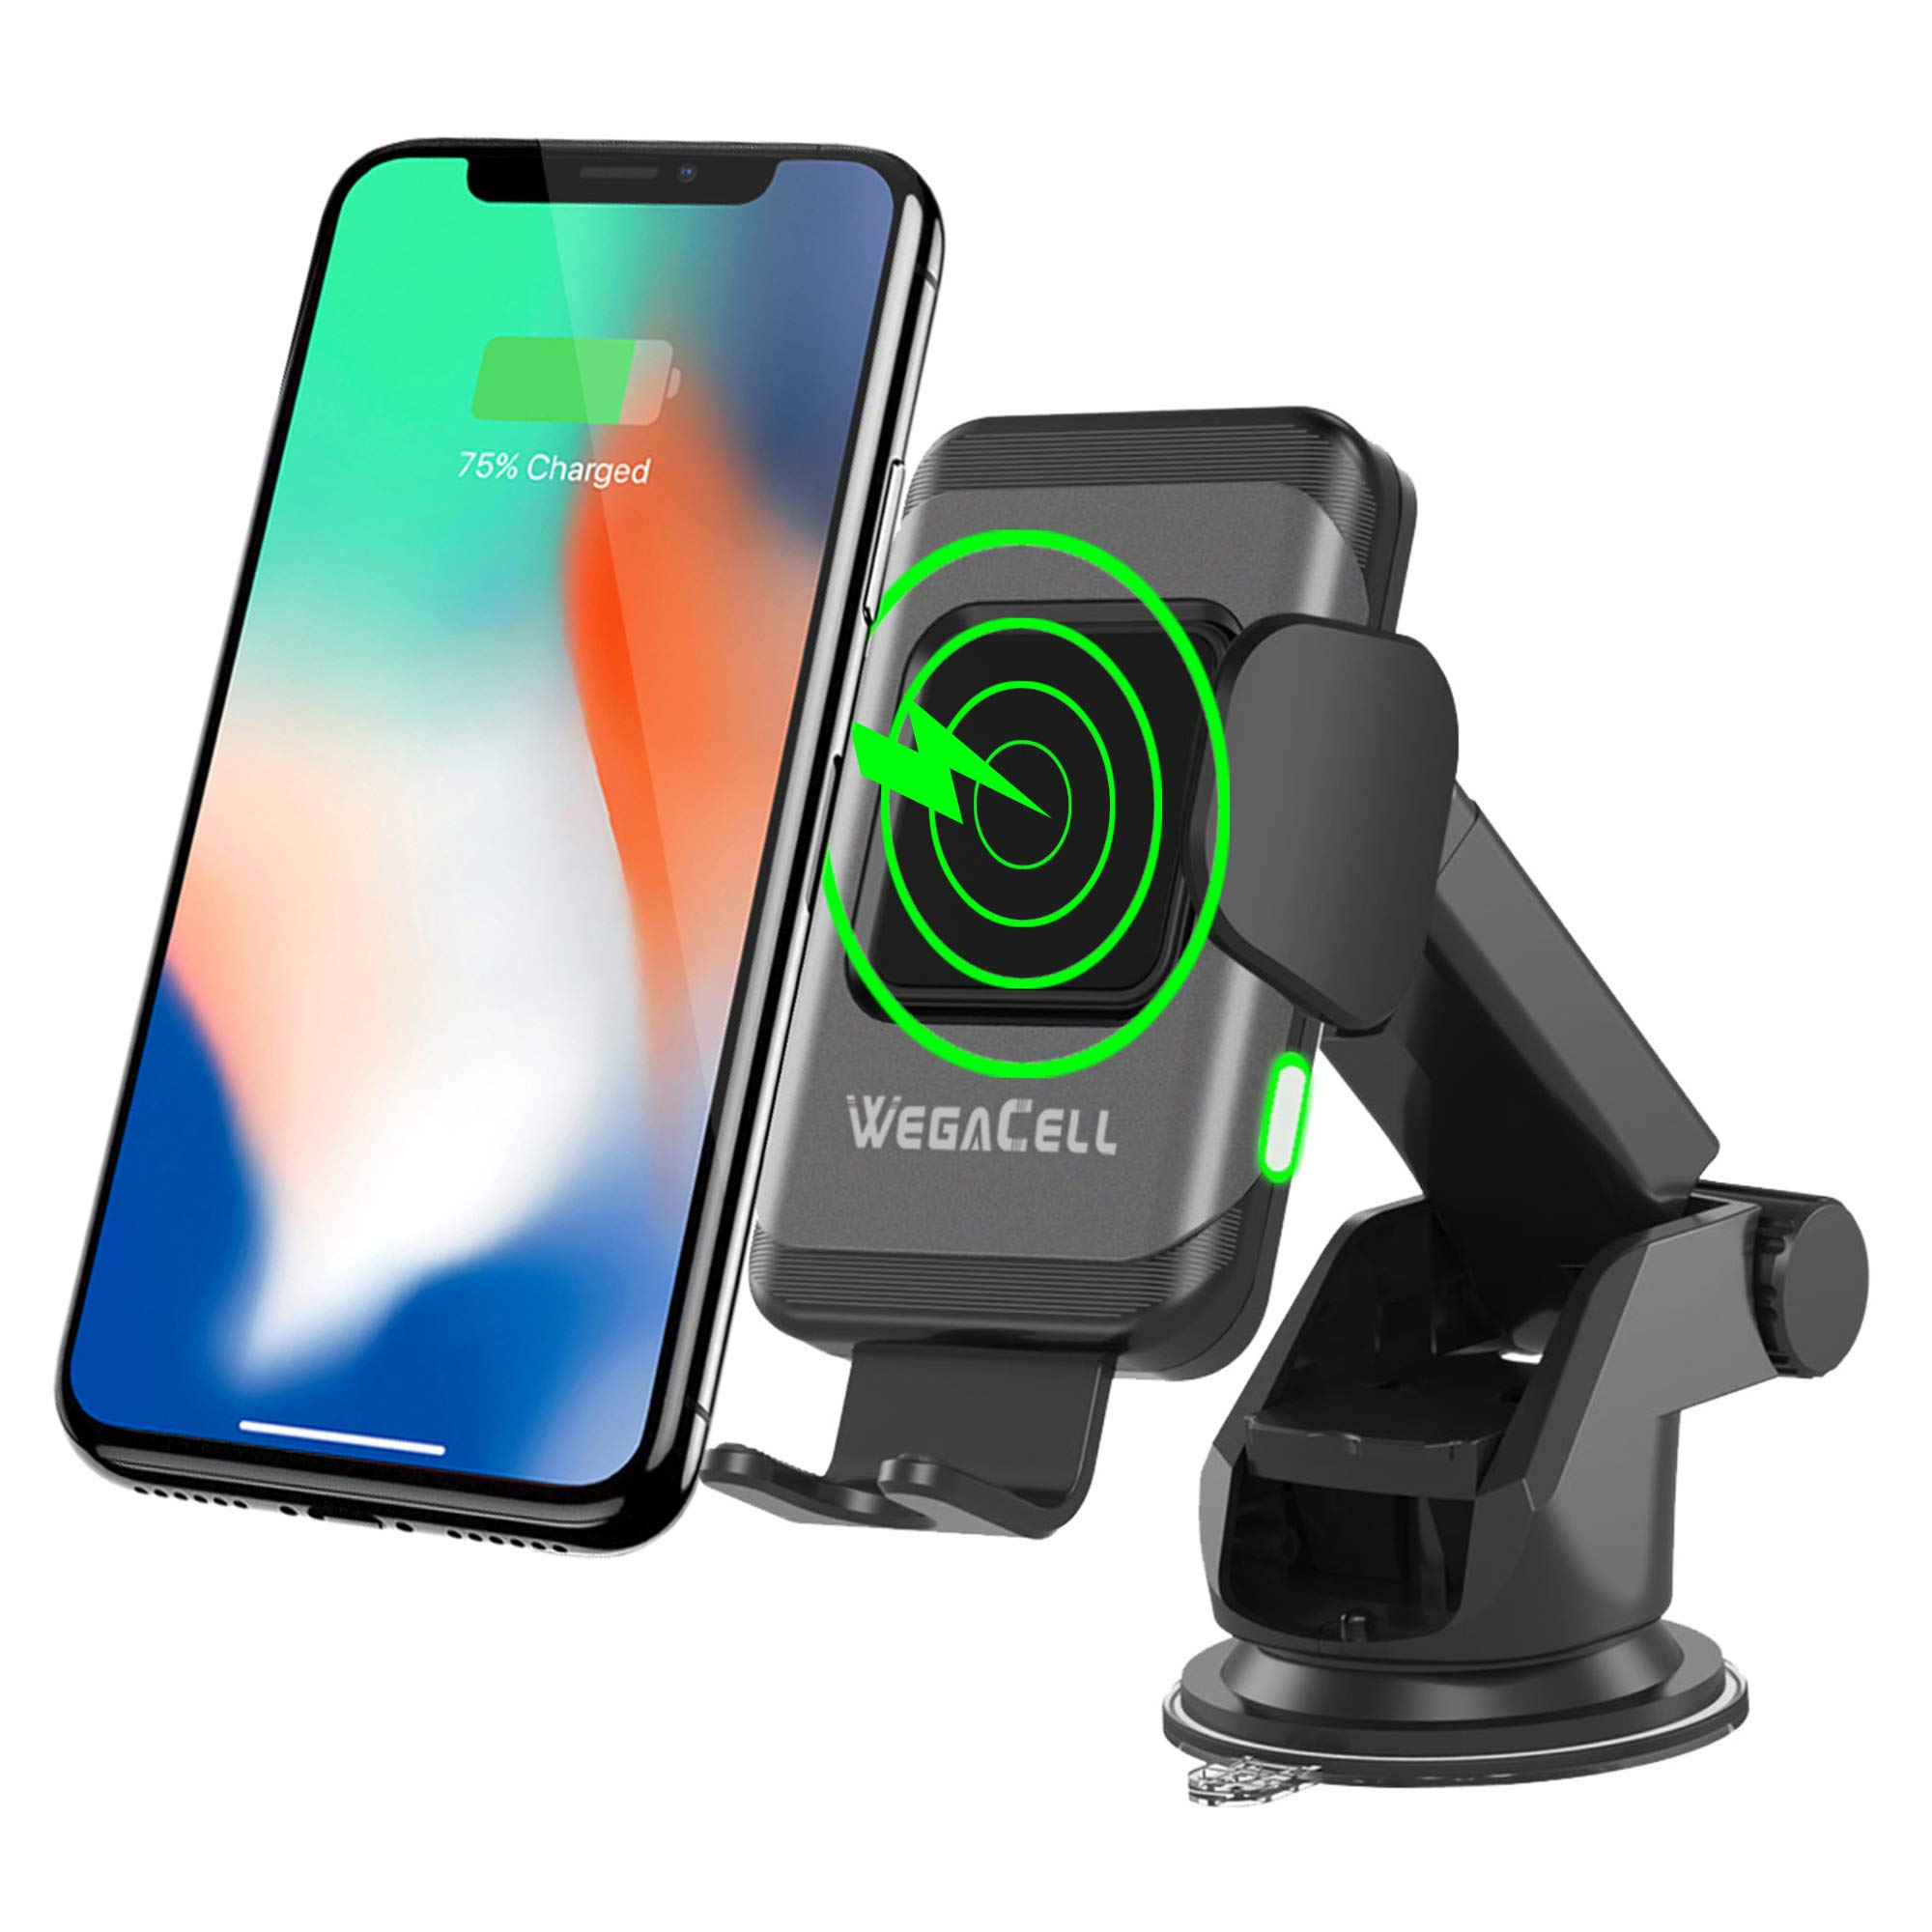 Wegacell Fast Wireless Car Charger Phone Mount, Qi Charging, Windshield Dash Vent Phone Holder, Auto Clamping Arms Compatible with iPhone XR, 8, or Newer, Samsung S7 or Newer, and Other Smartphones by Sonilex Industries Ltd.